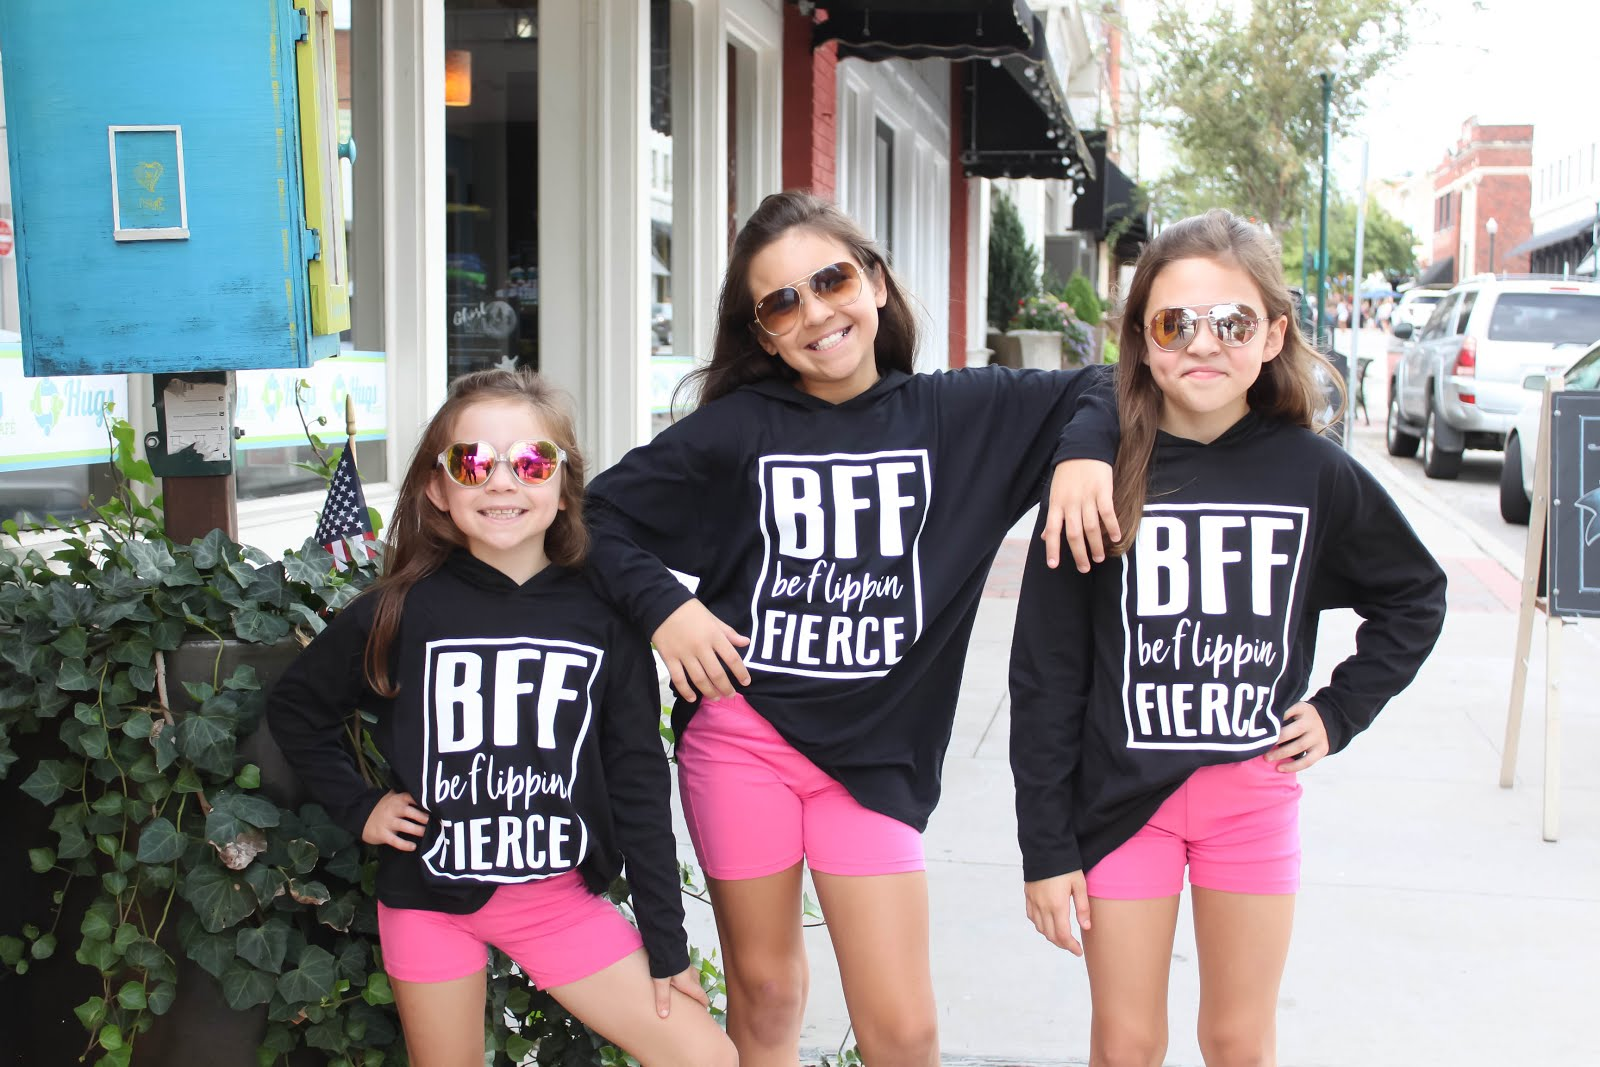 Be Flippin Fierce